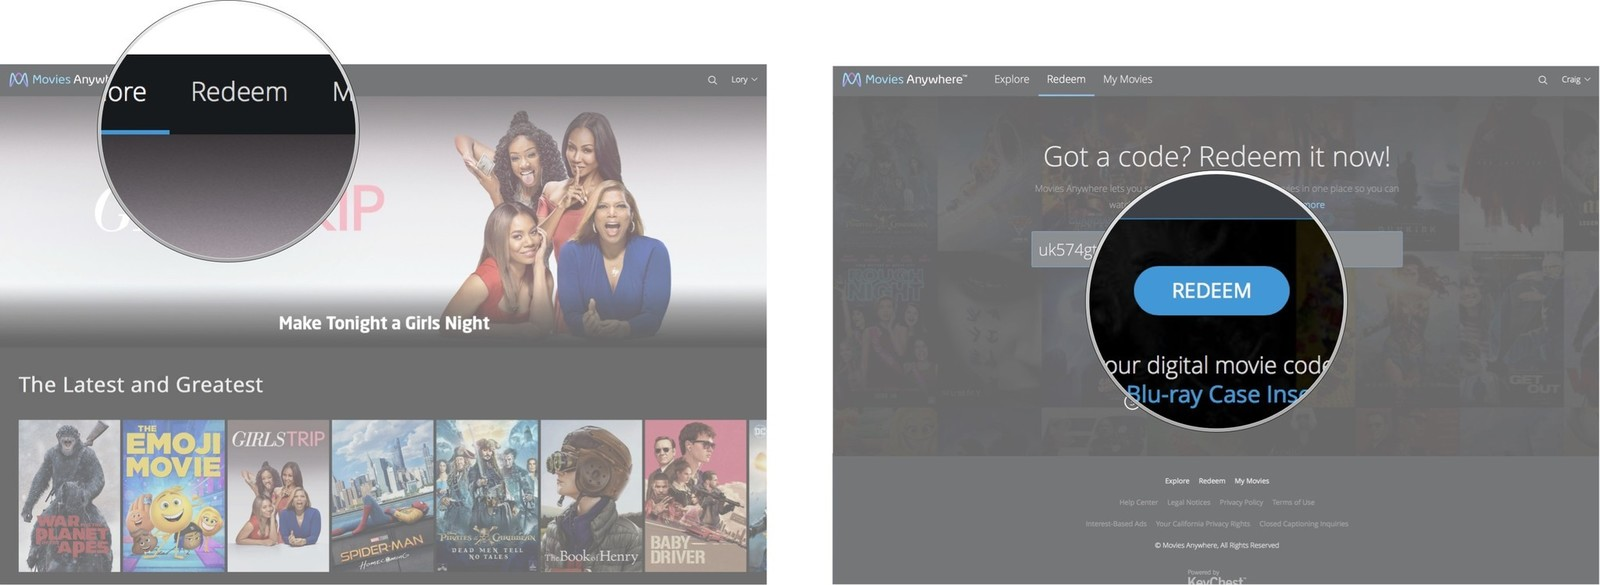 Movies Anywhere: Everything you need to know! | iMore